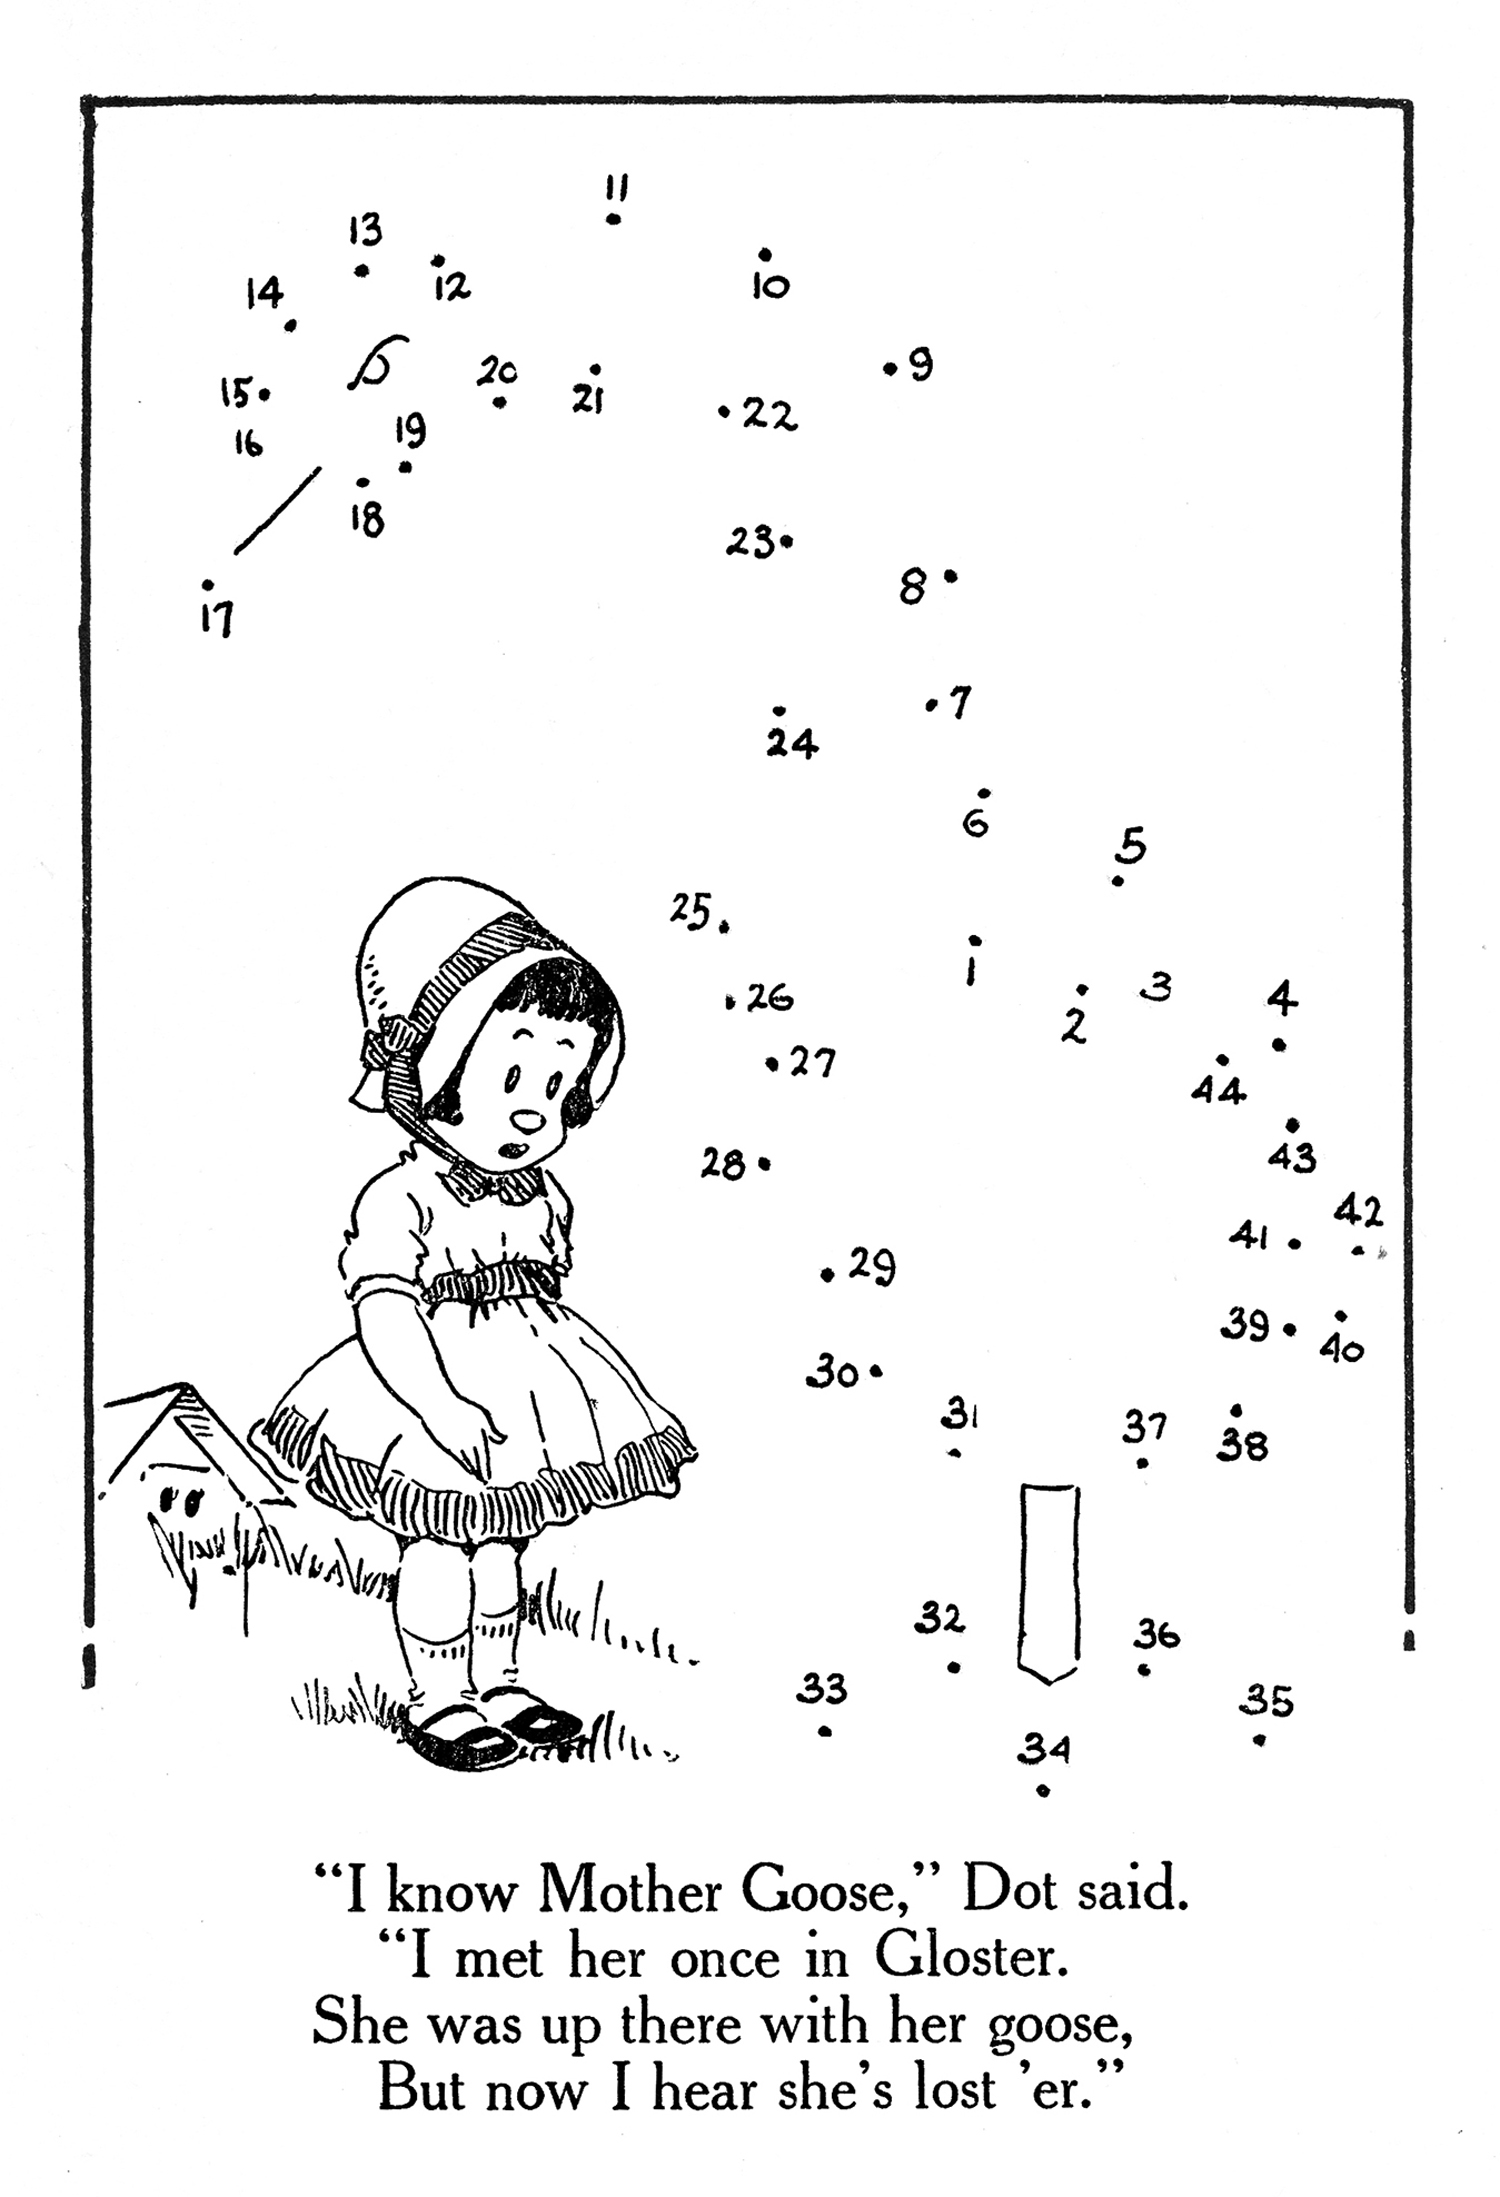 dot to dot 1 1000 worksheets 9 best images of connect the dots worksheets 1 1000 hard dot dot 1 1000 worksheets to